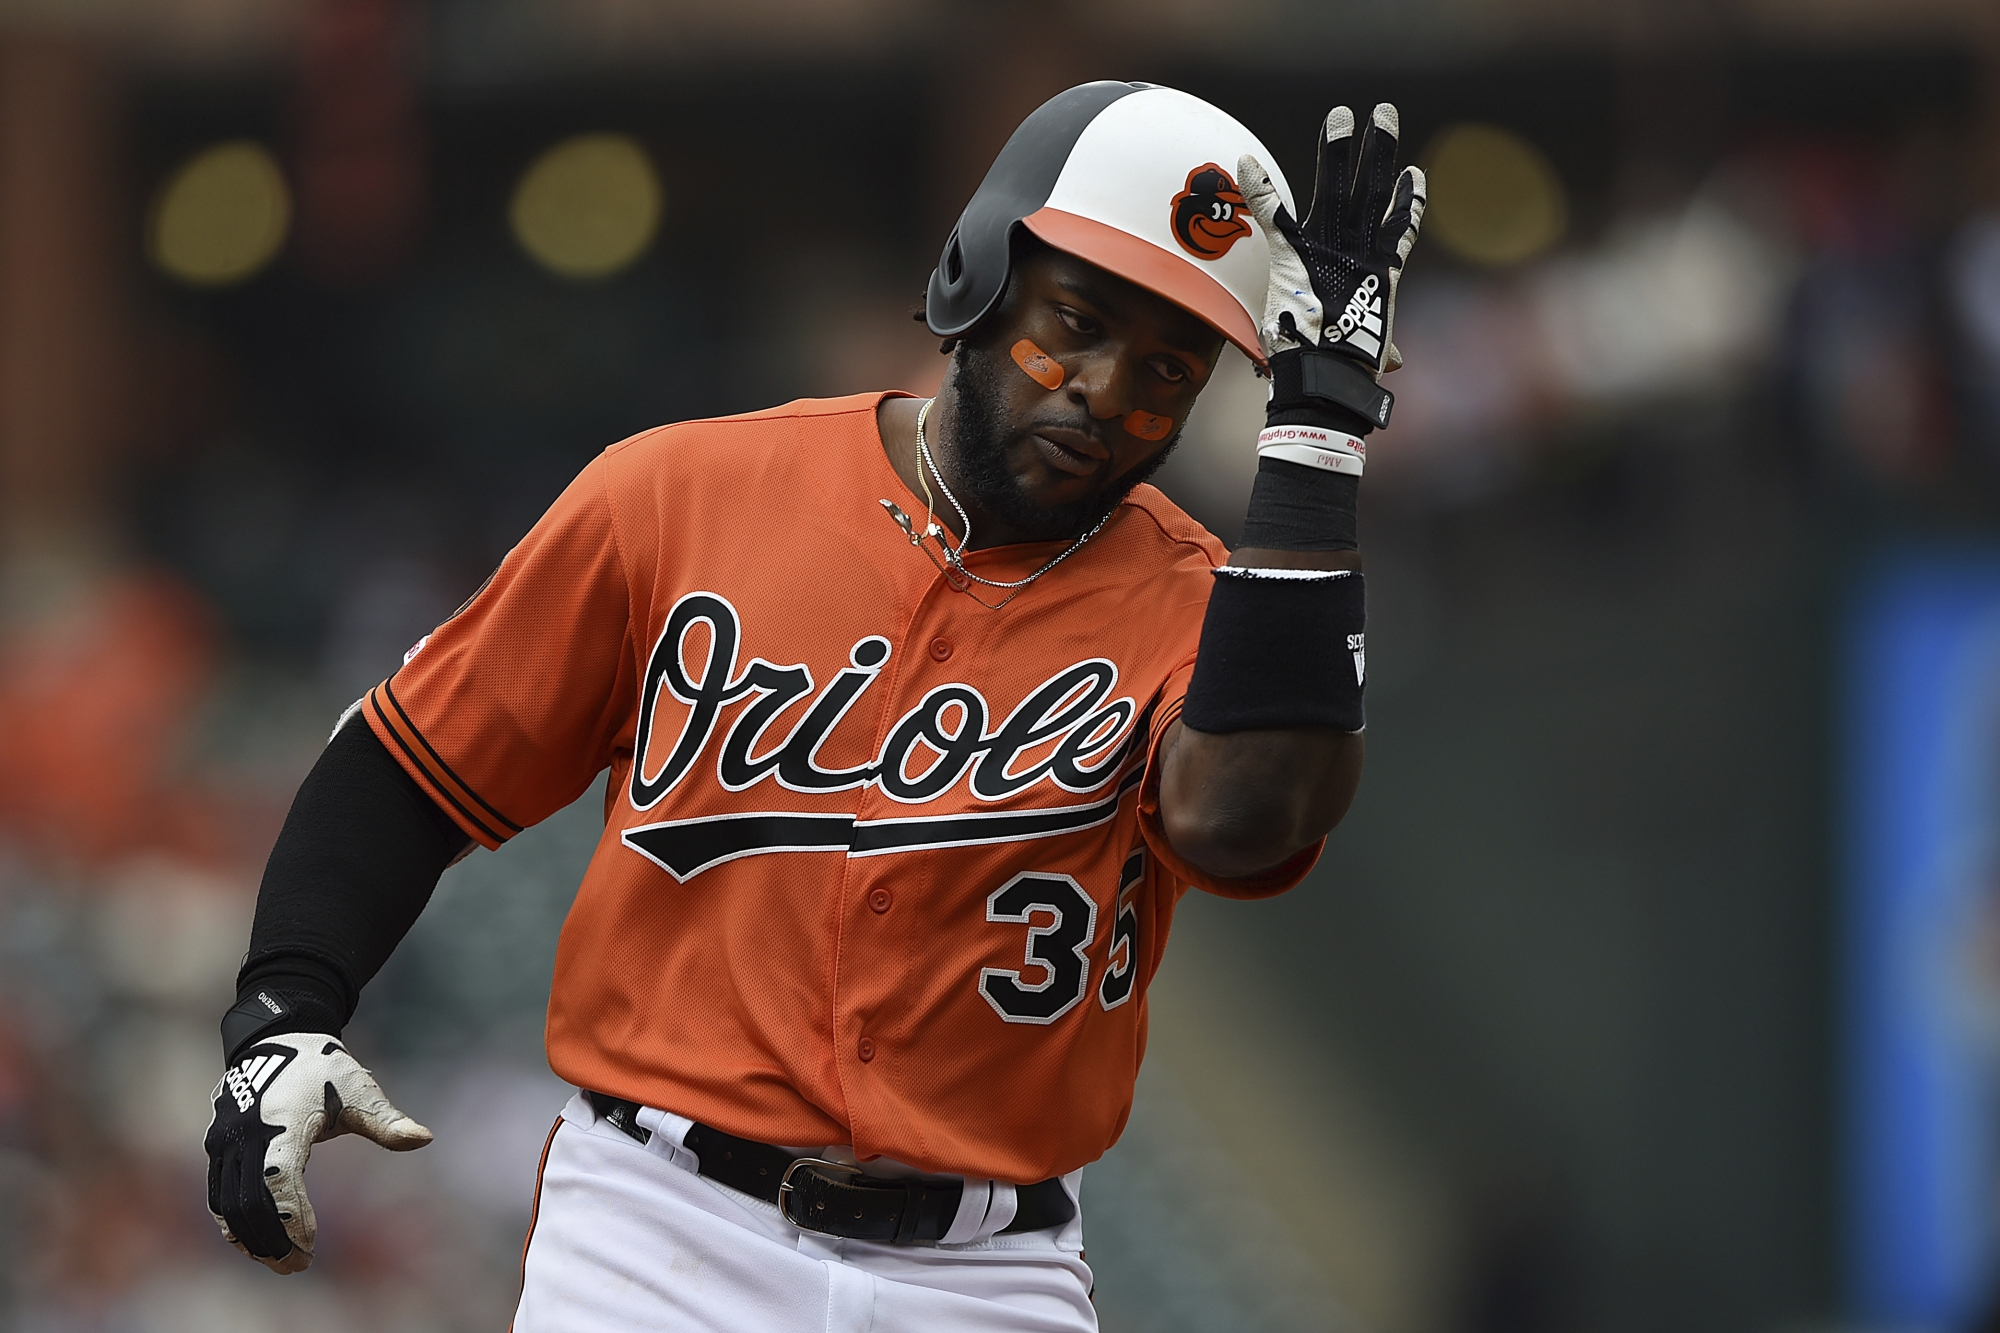 Pujols' 2 HRs, 3 RBIs To Help Angels Beat Orioles 7-2